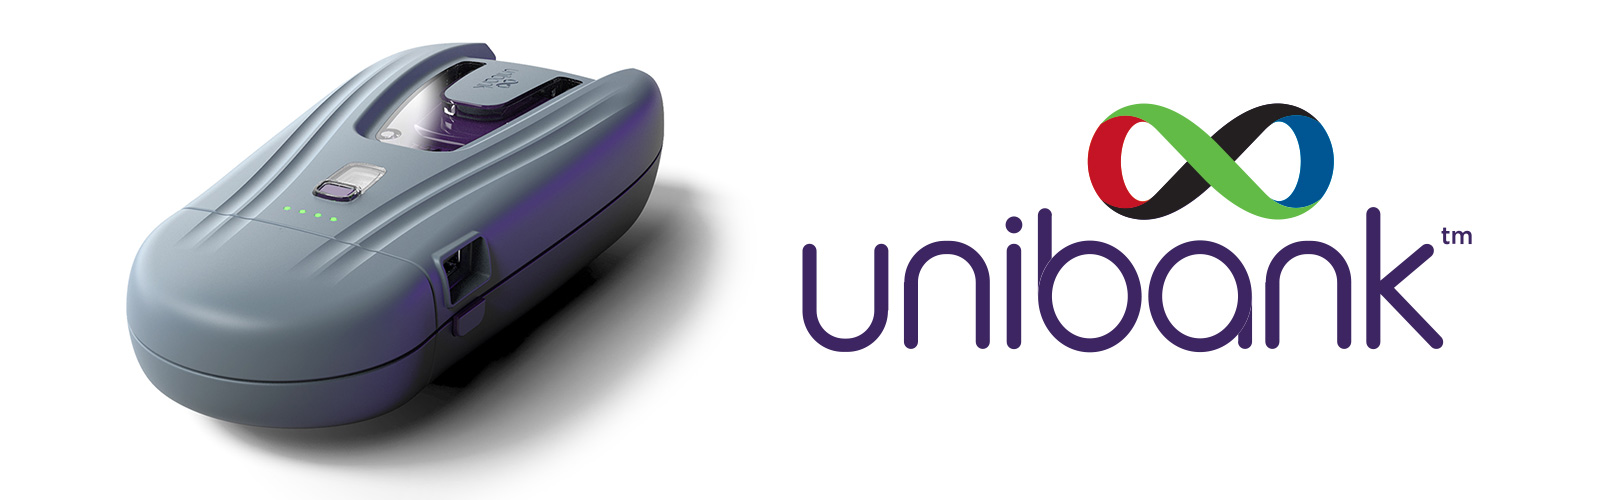 The Unibank power bank next to the Unibank logo